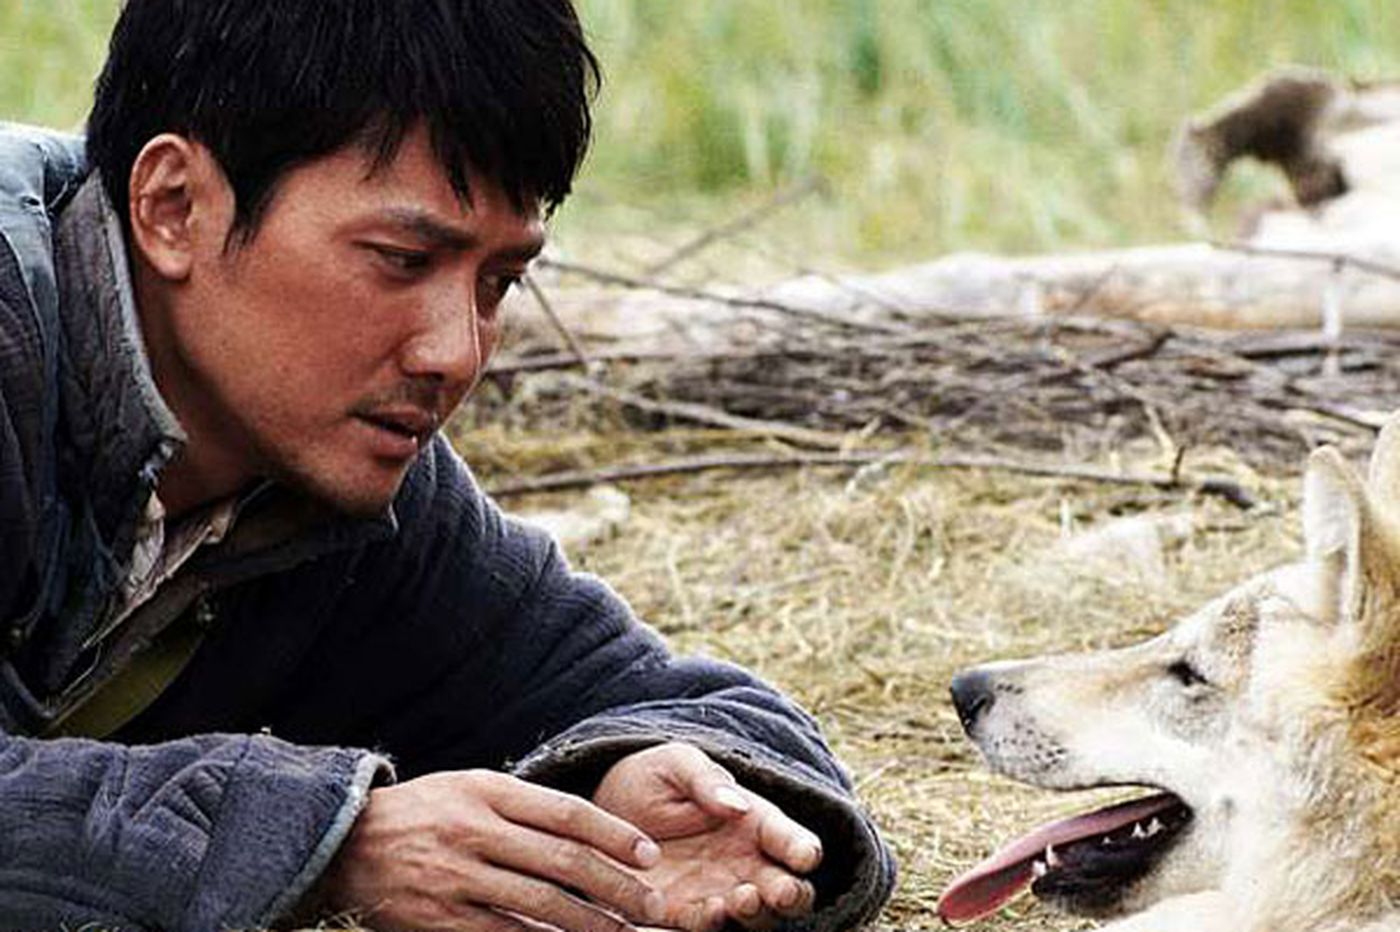 In 'Wolf Totem,' mind-blowing scenes of hunter and hunted